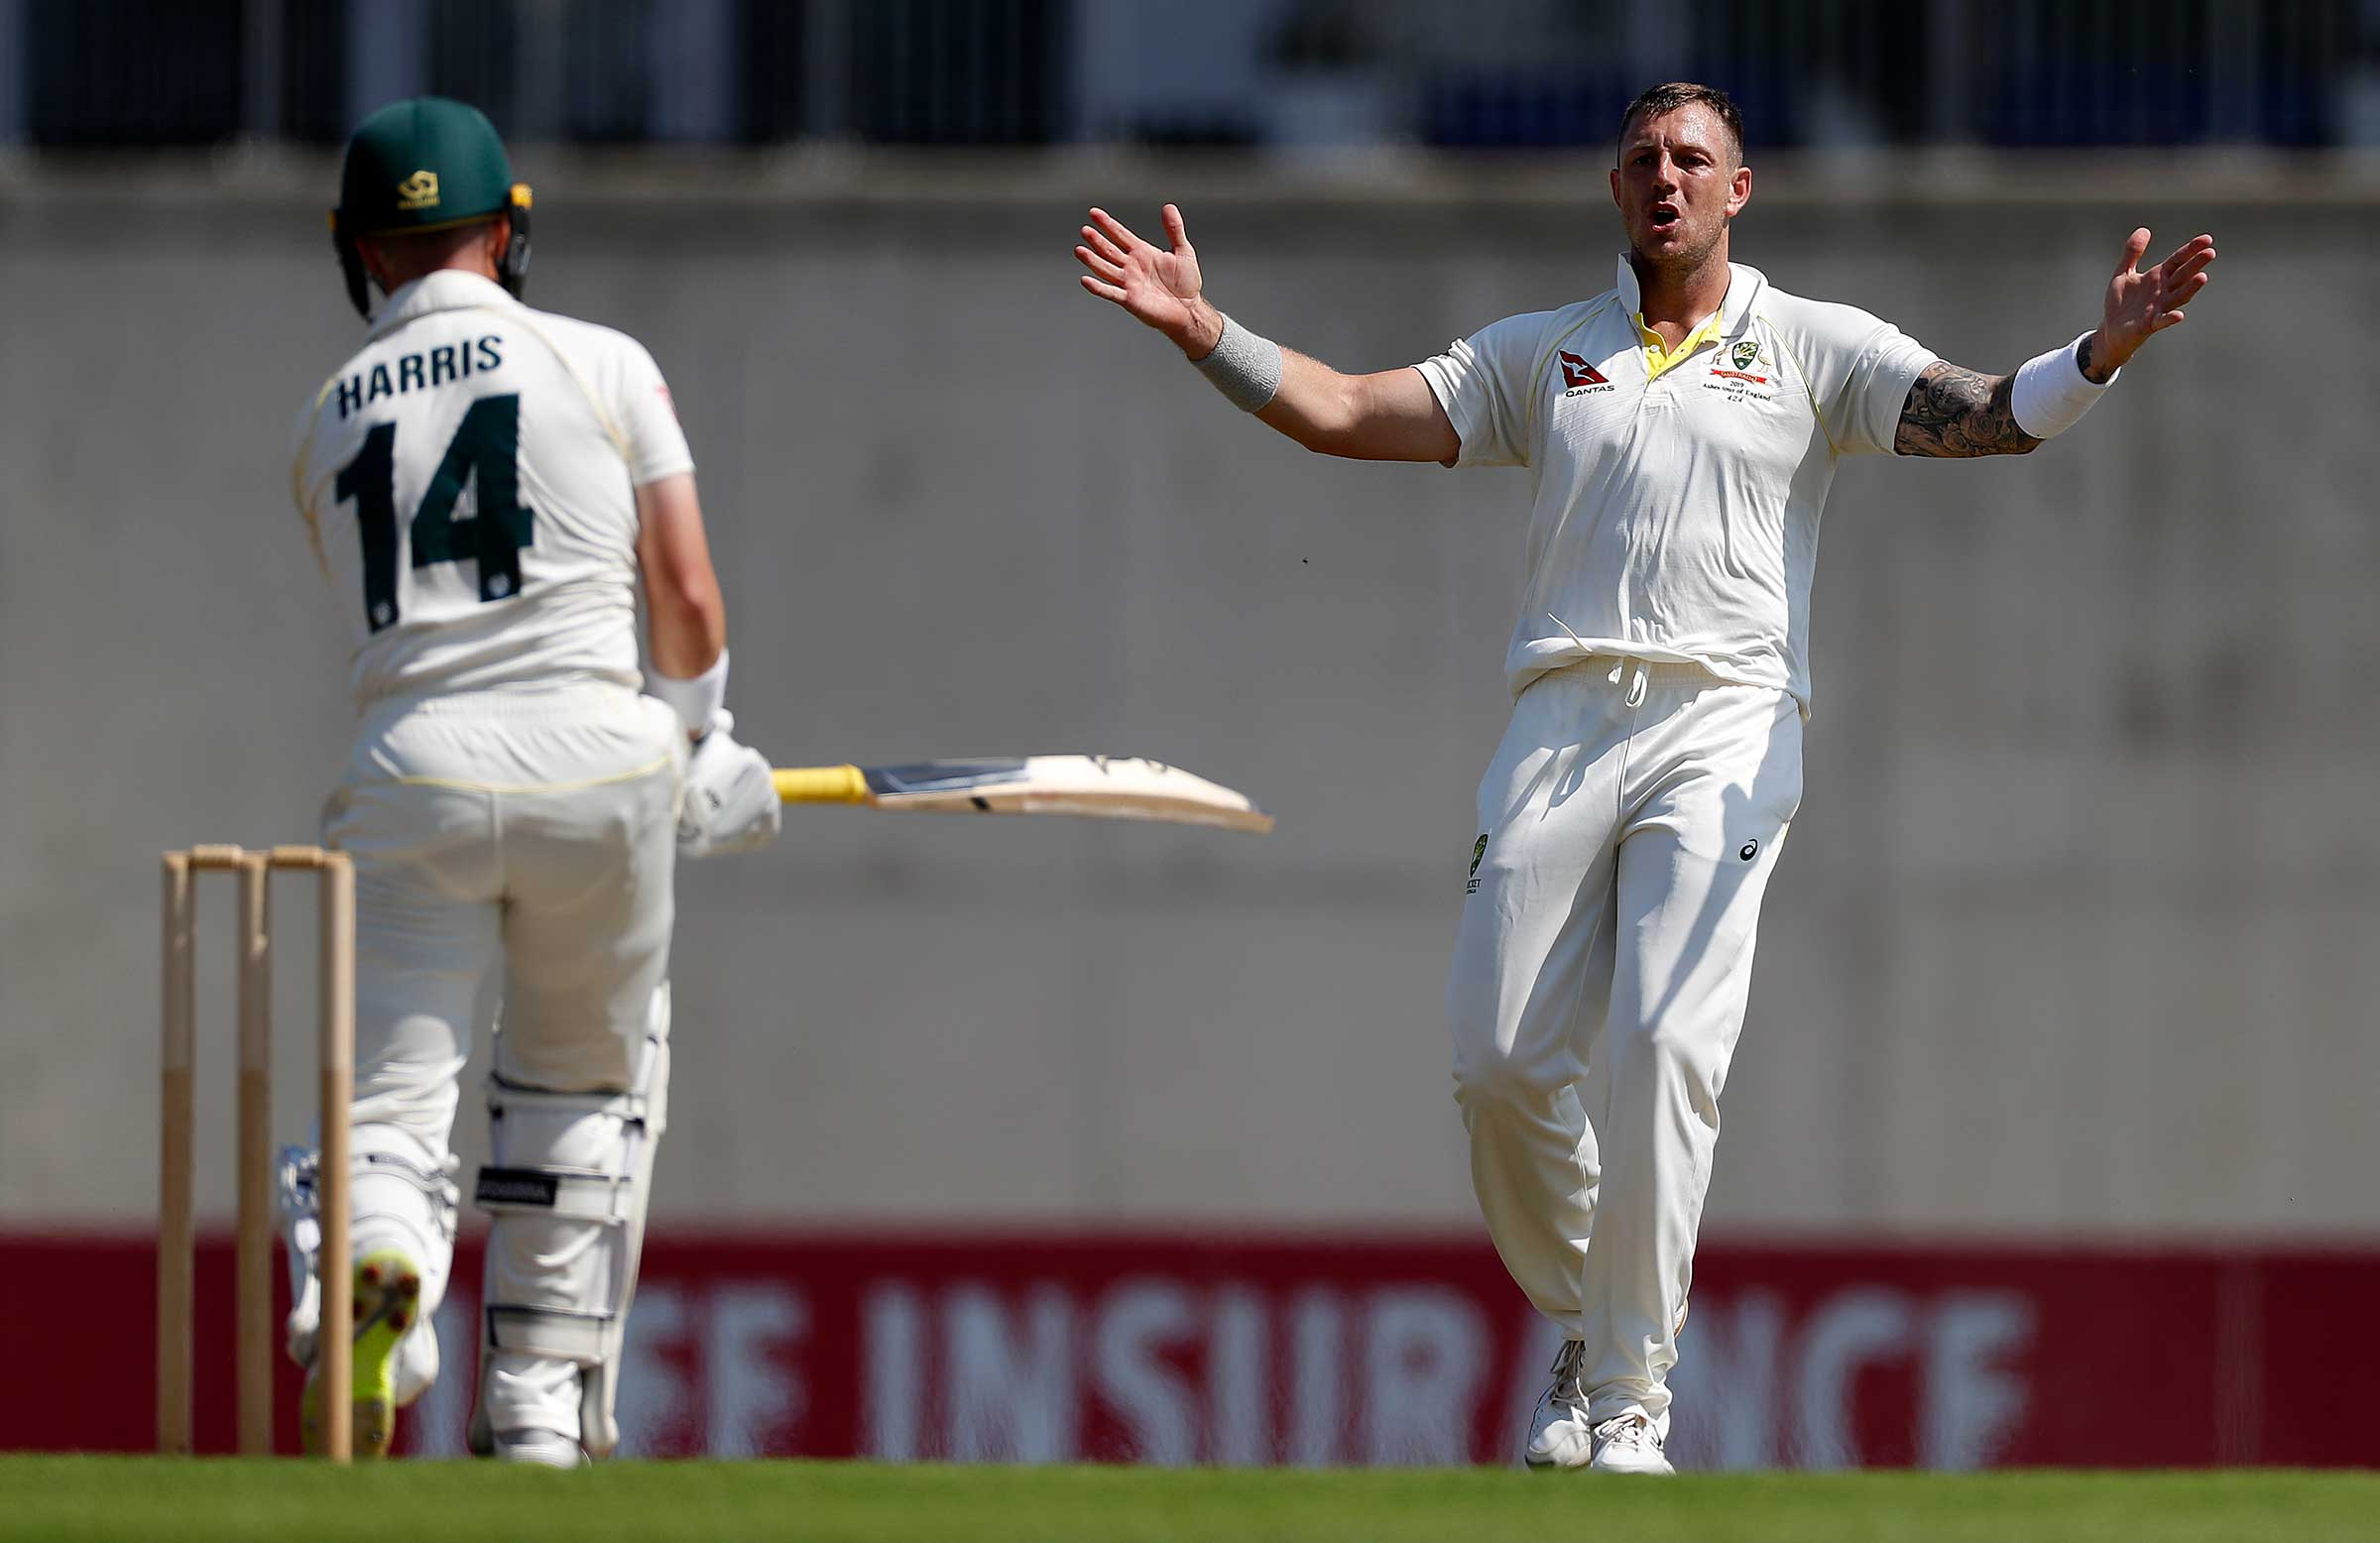 James Pattinson bowled without luck early // Getty